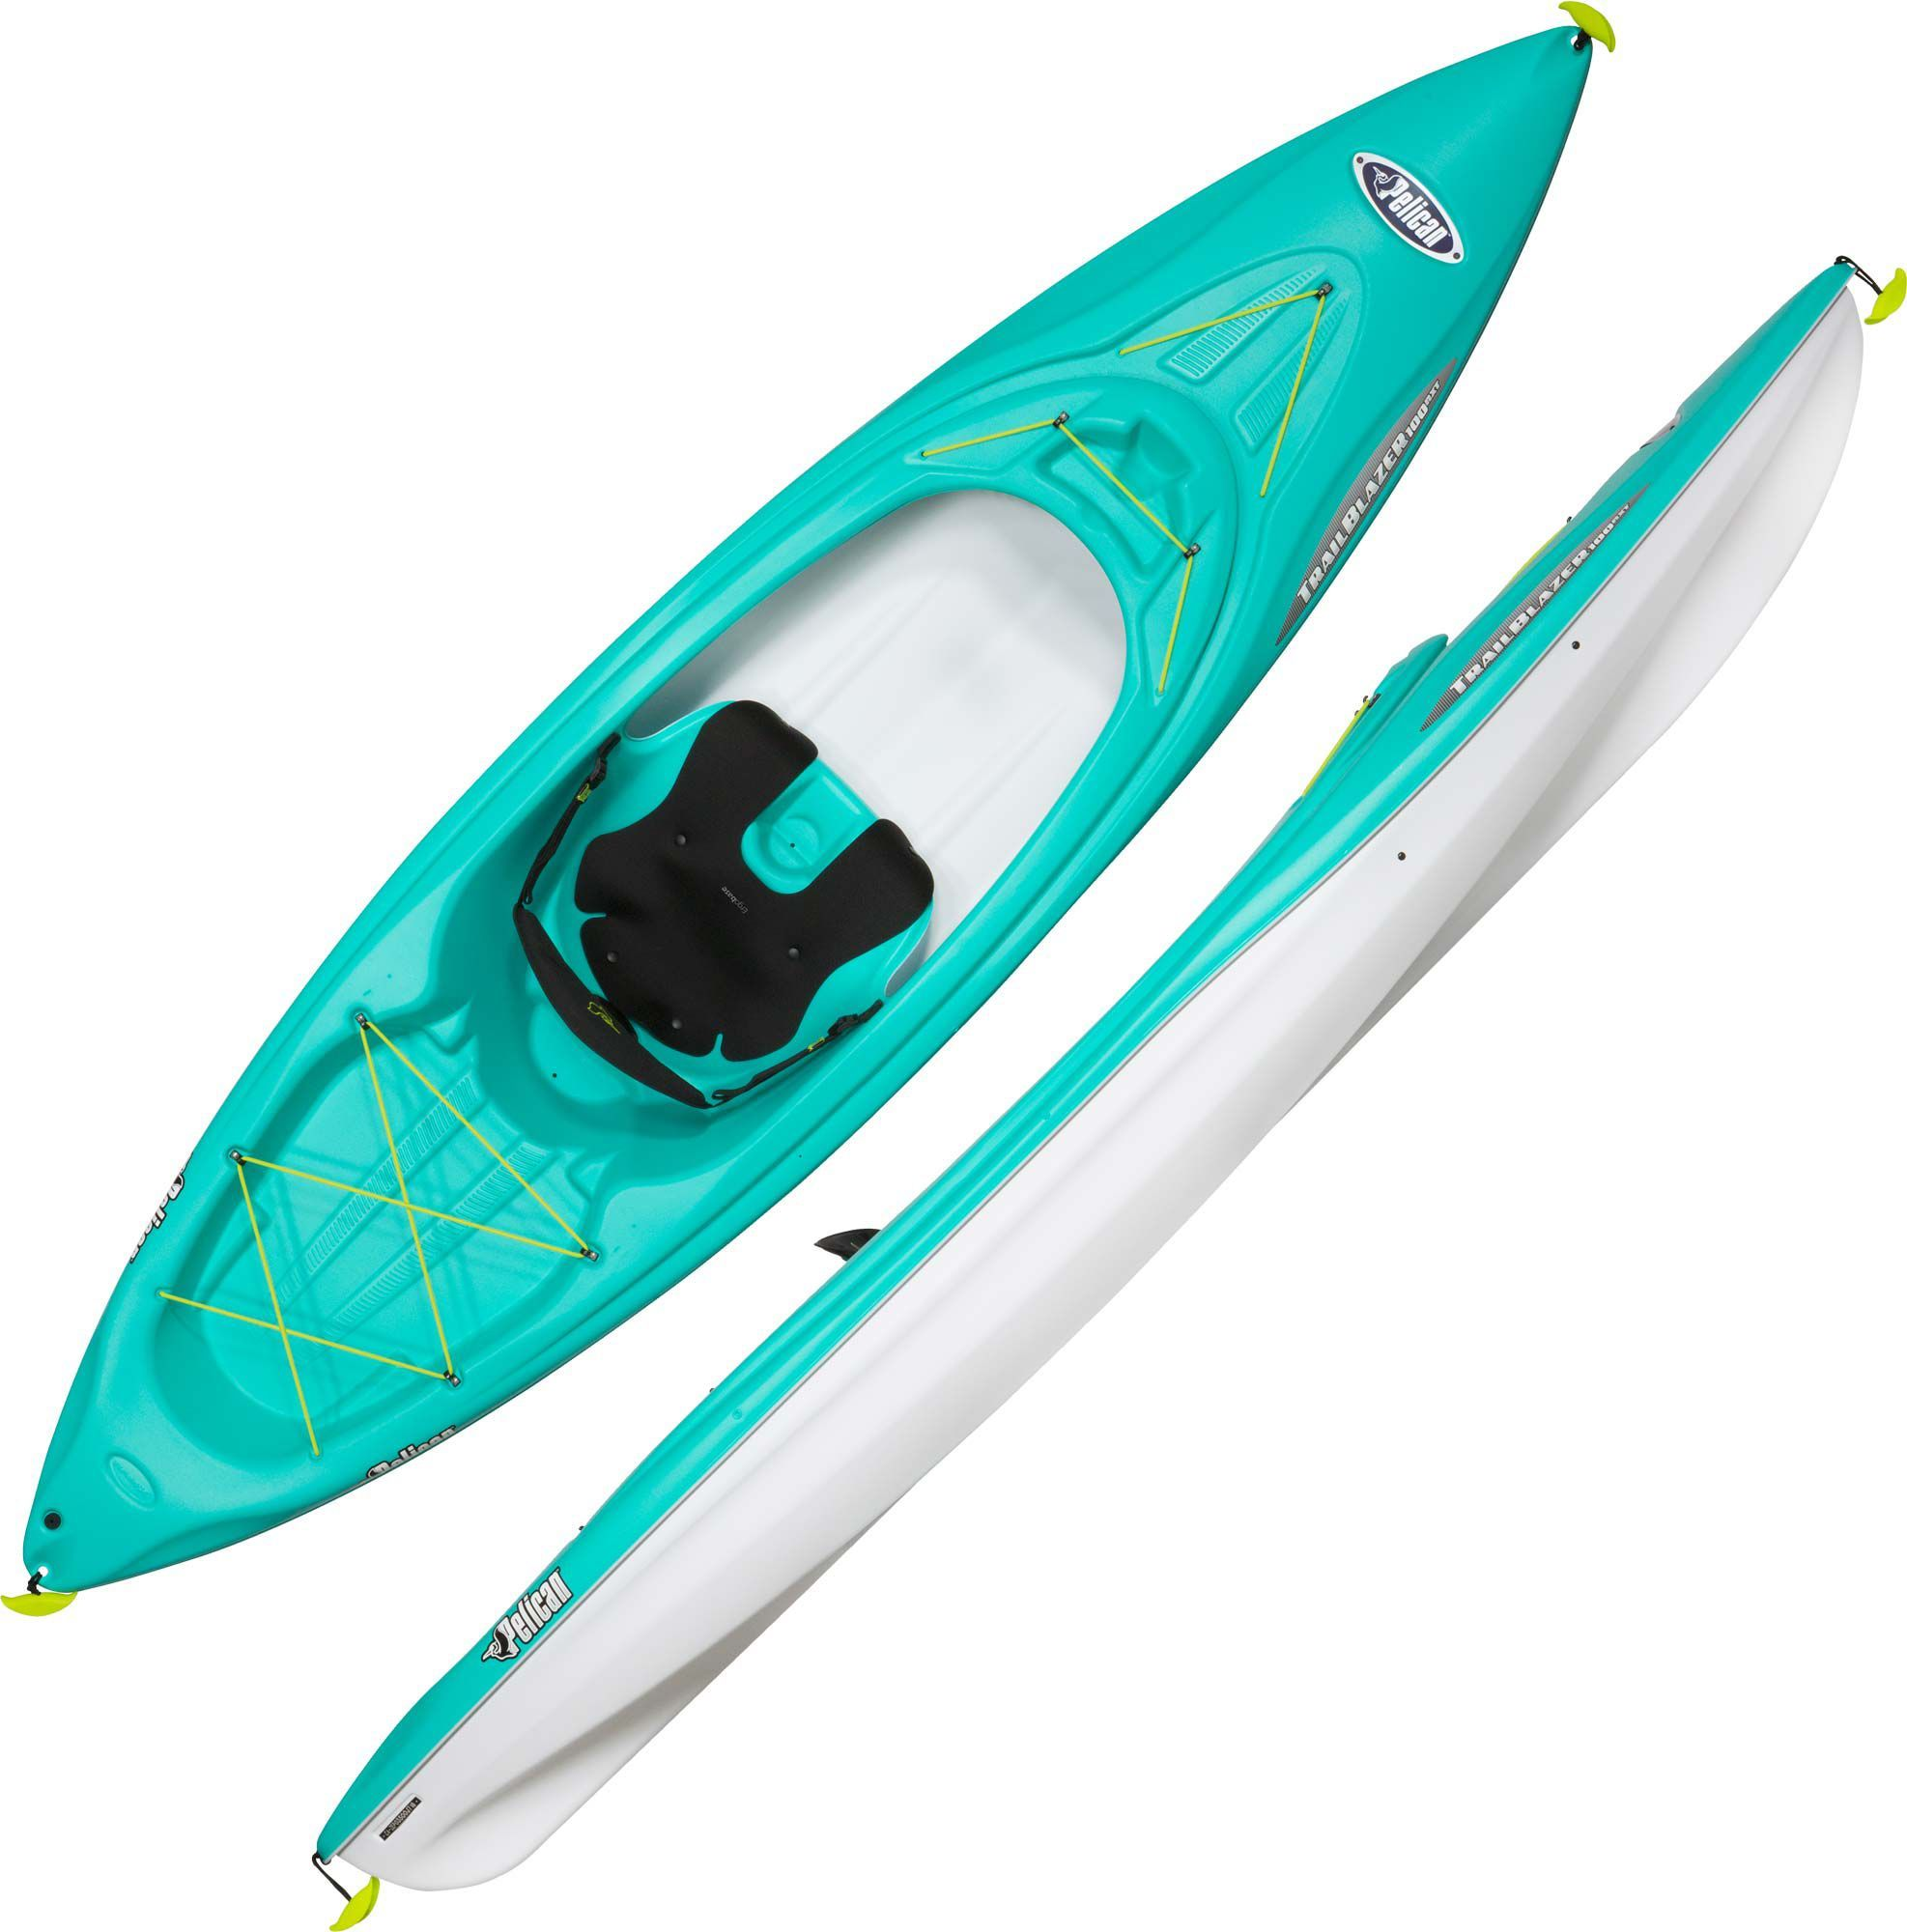 Pelican Trailblazer 100 Nxt Kayak With Images Kayak